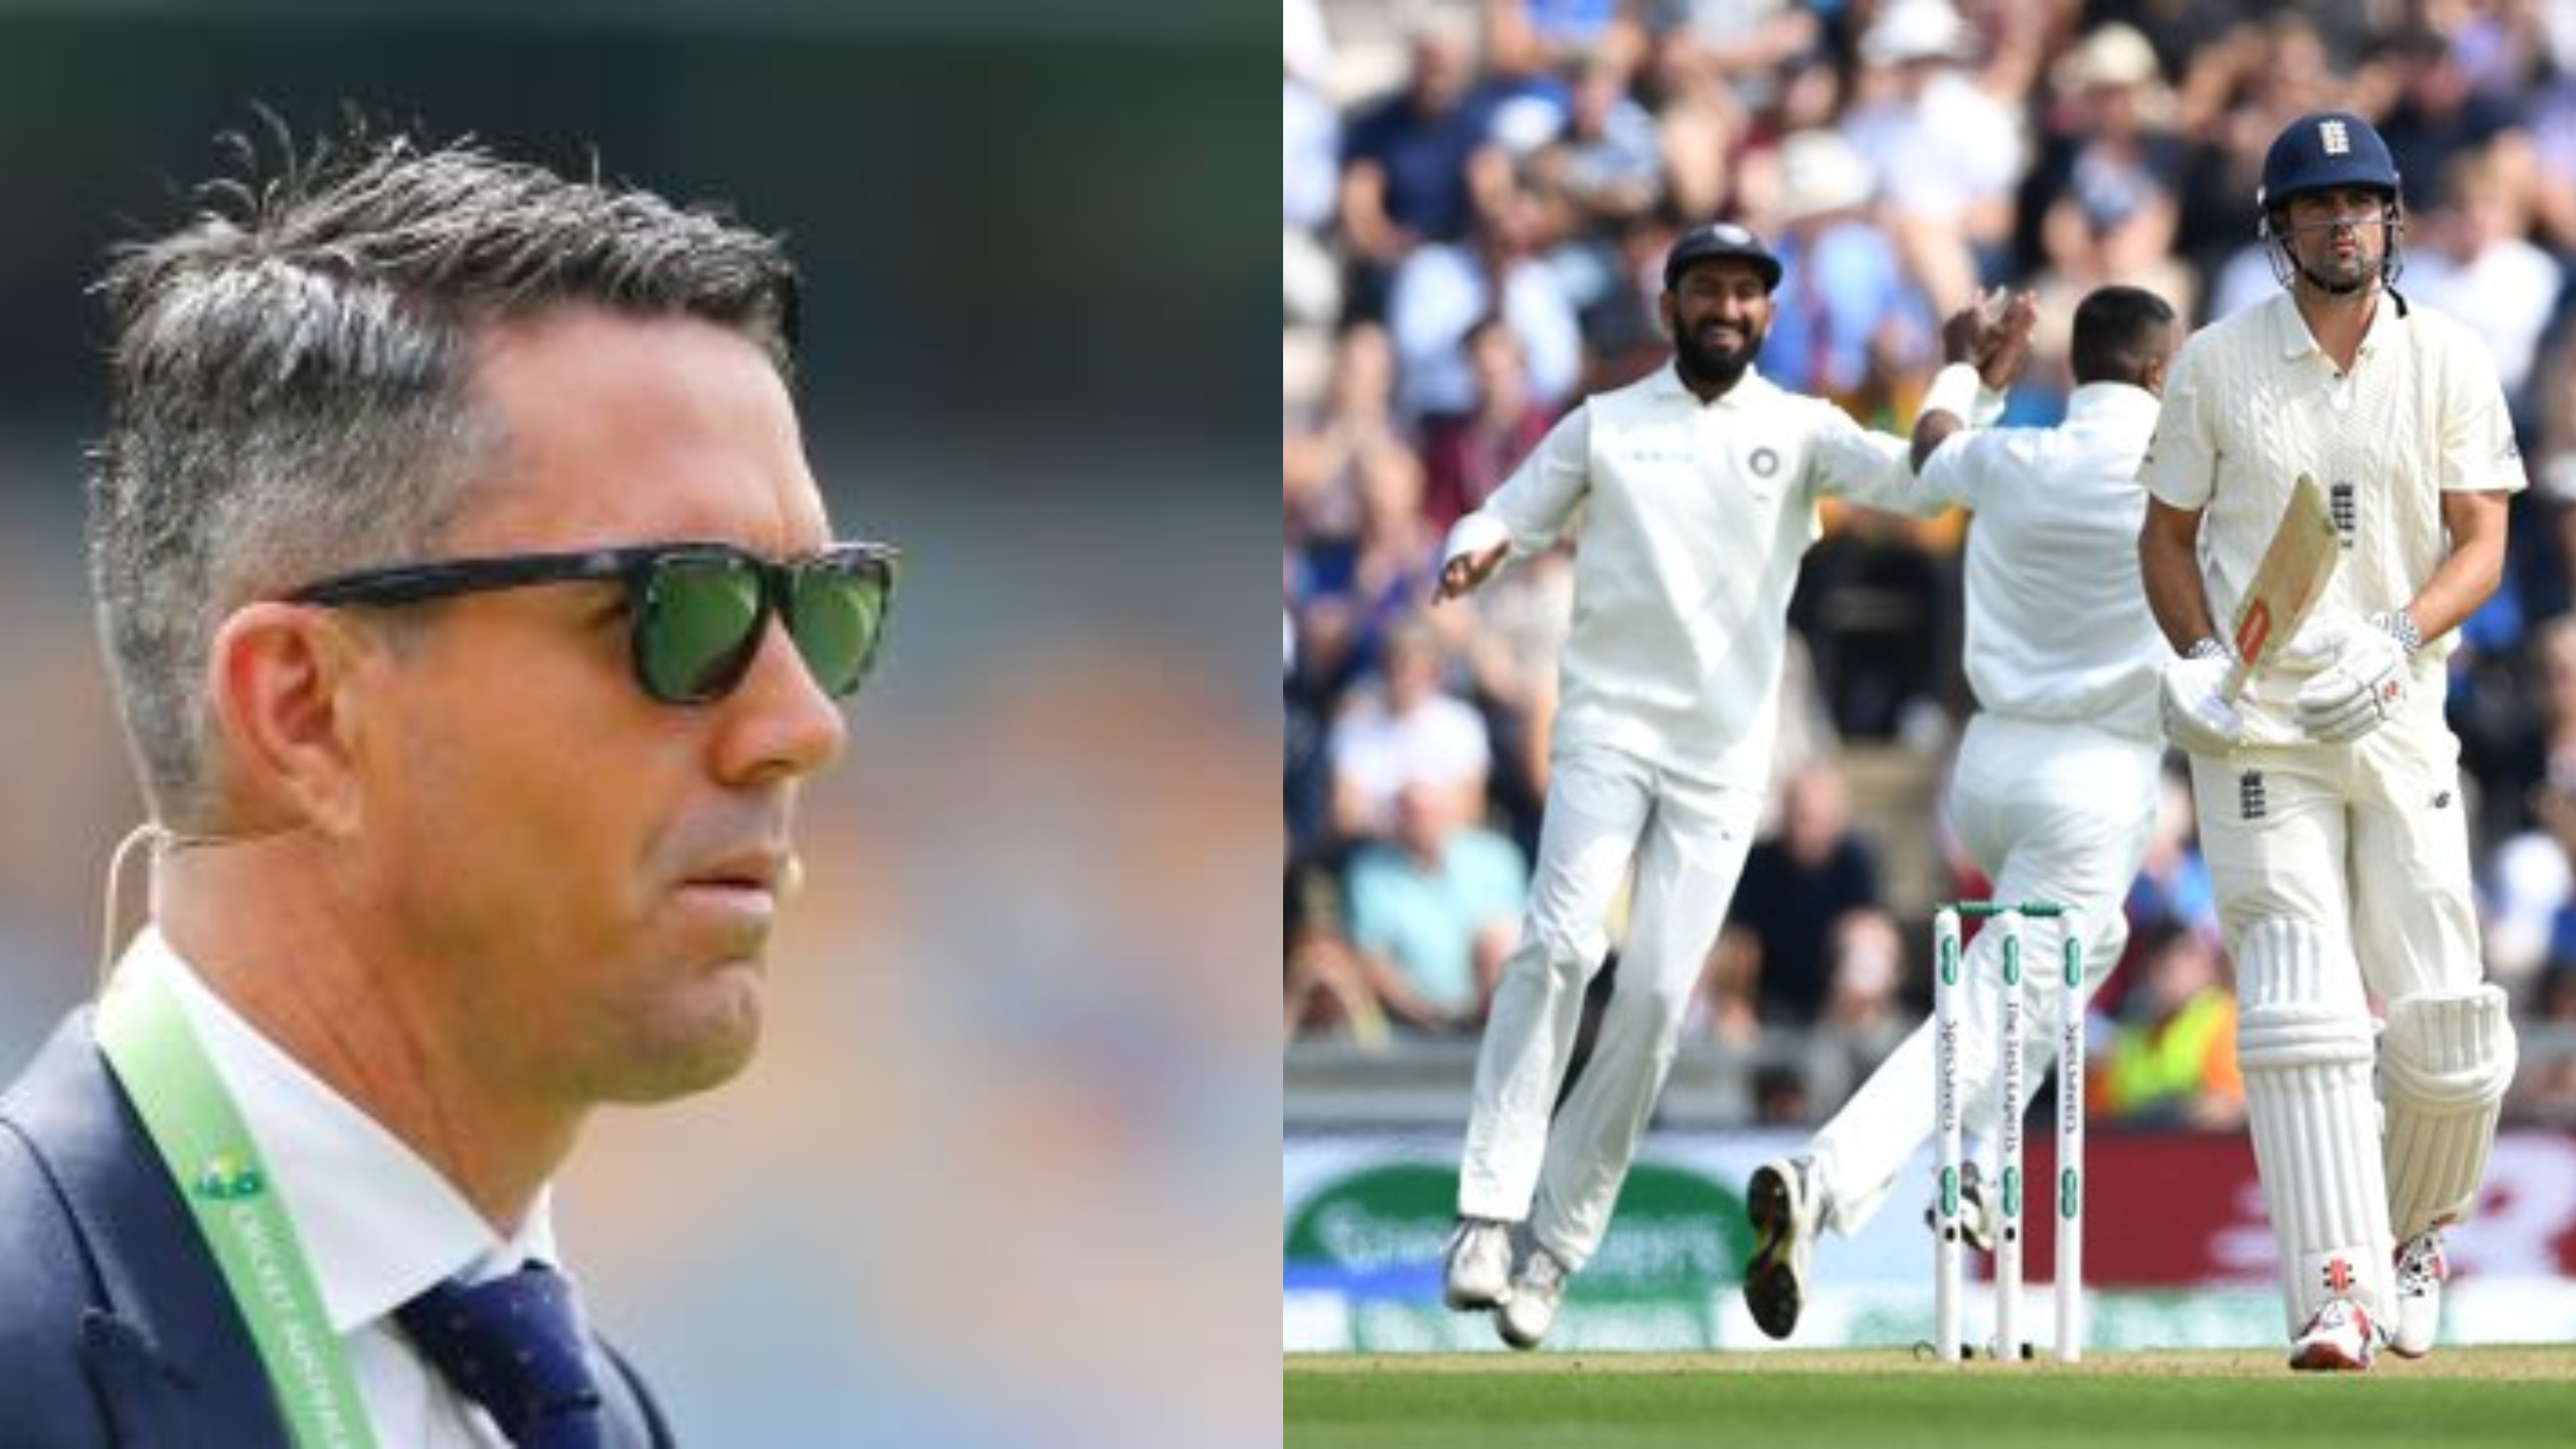 ENG v IND 2018: Kevin Pietersen slams England batsmen after their dismal performance in the first innings in Southampton